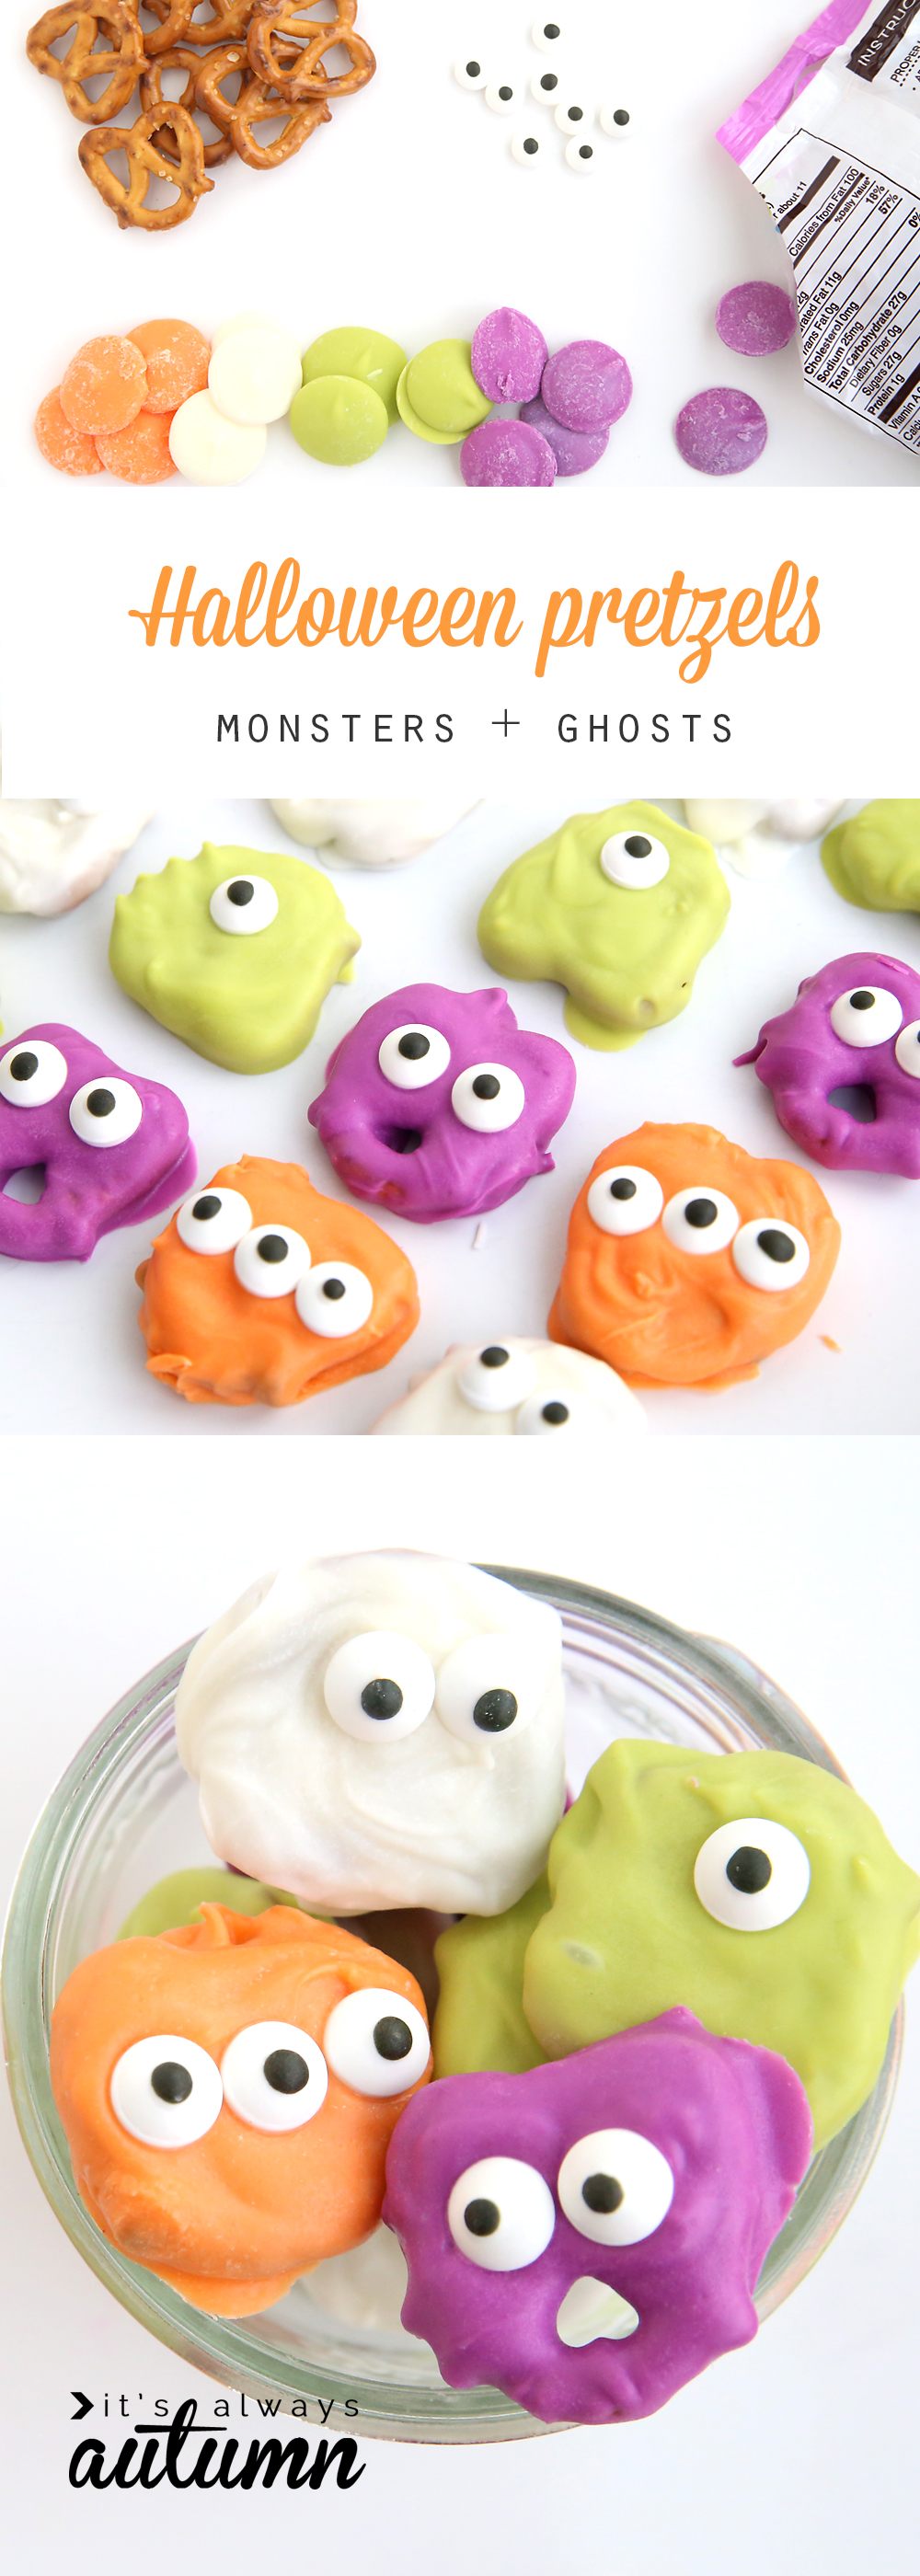 Pretzels dipped in candy and decorated to look like monsters and ghosts for Halloween